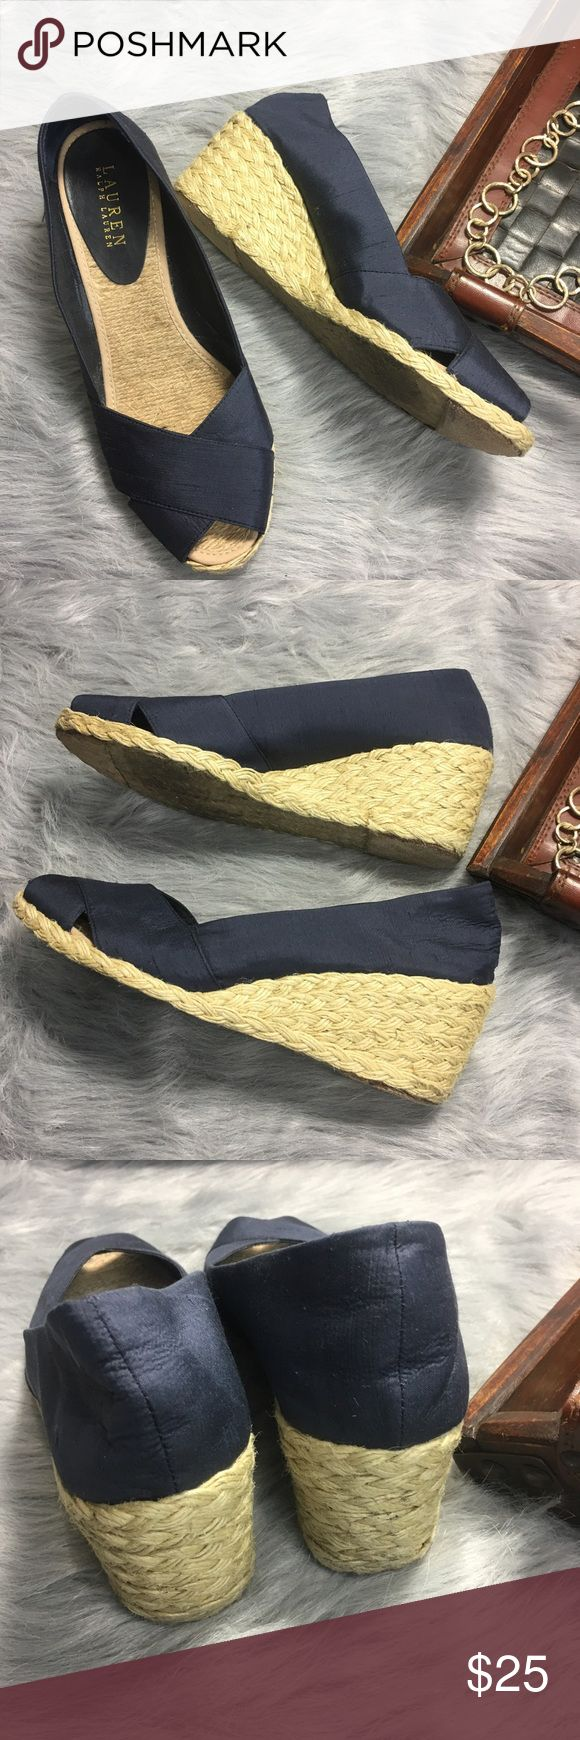 Ralph Lauren Navy Blue Cecilia Espadrille Wedge Ralph Lauren Women's Navy Blue Cecilia Espadrille Wedge Sandal Size 9.5 B  Nice pre-owned condition, light signs of wear on soles, no flaws, lots of life left! Lauren Ralph Lauren Shoes Espadrilles